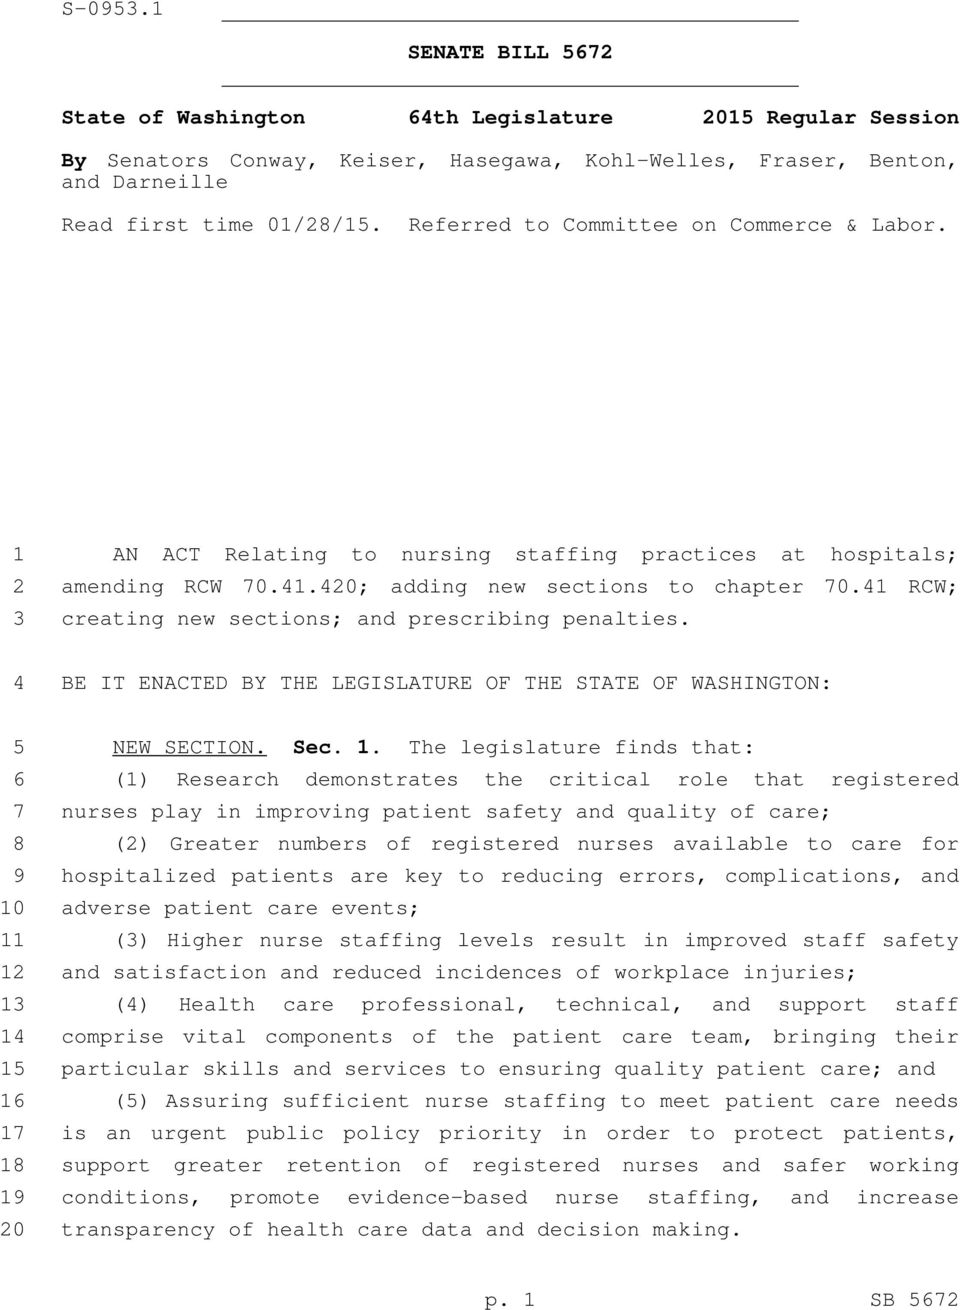 1 RCW; creating new sections; and prescribing penalties. BE IT ENACTED BY THE LEGISLATURE OF THE STATE OF WASHINGTON: 1